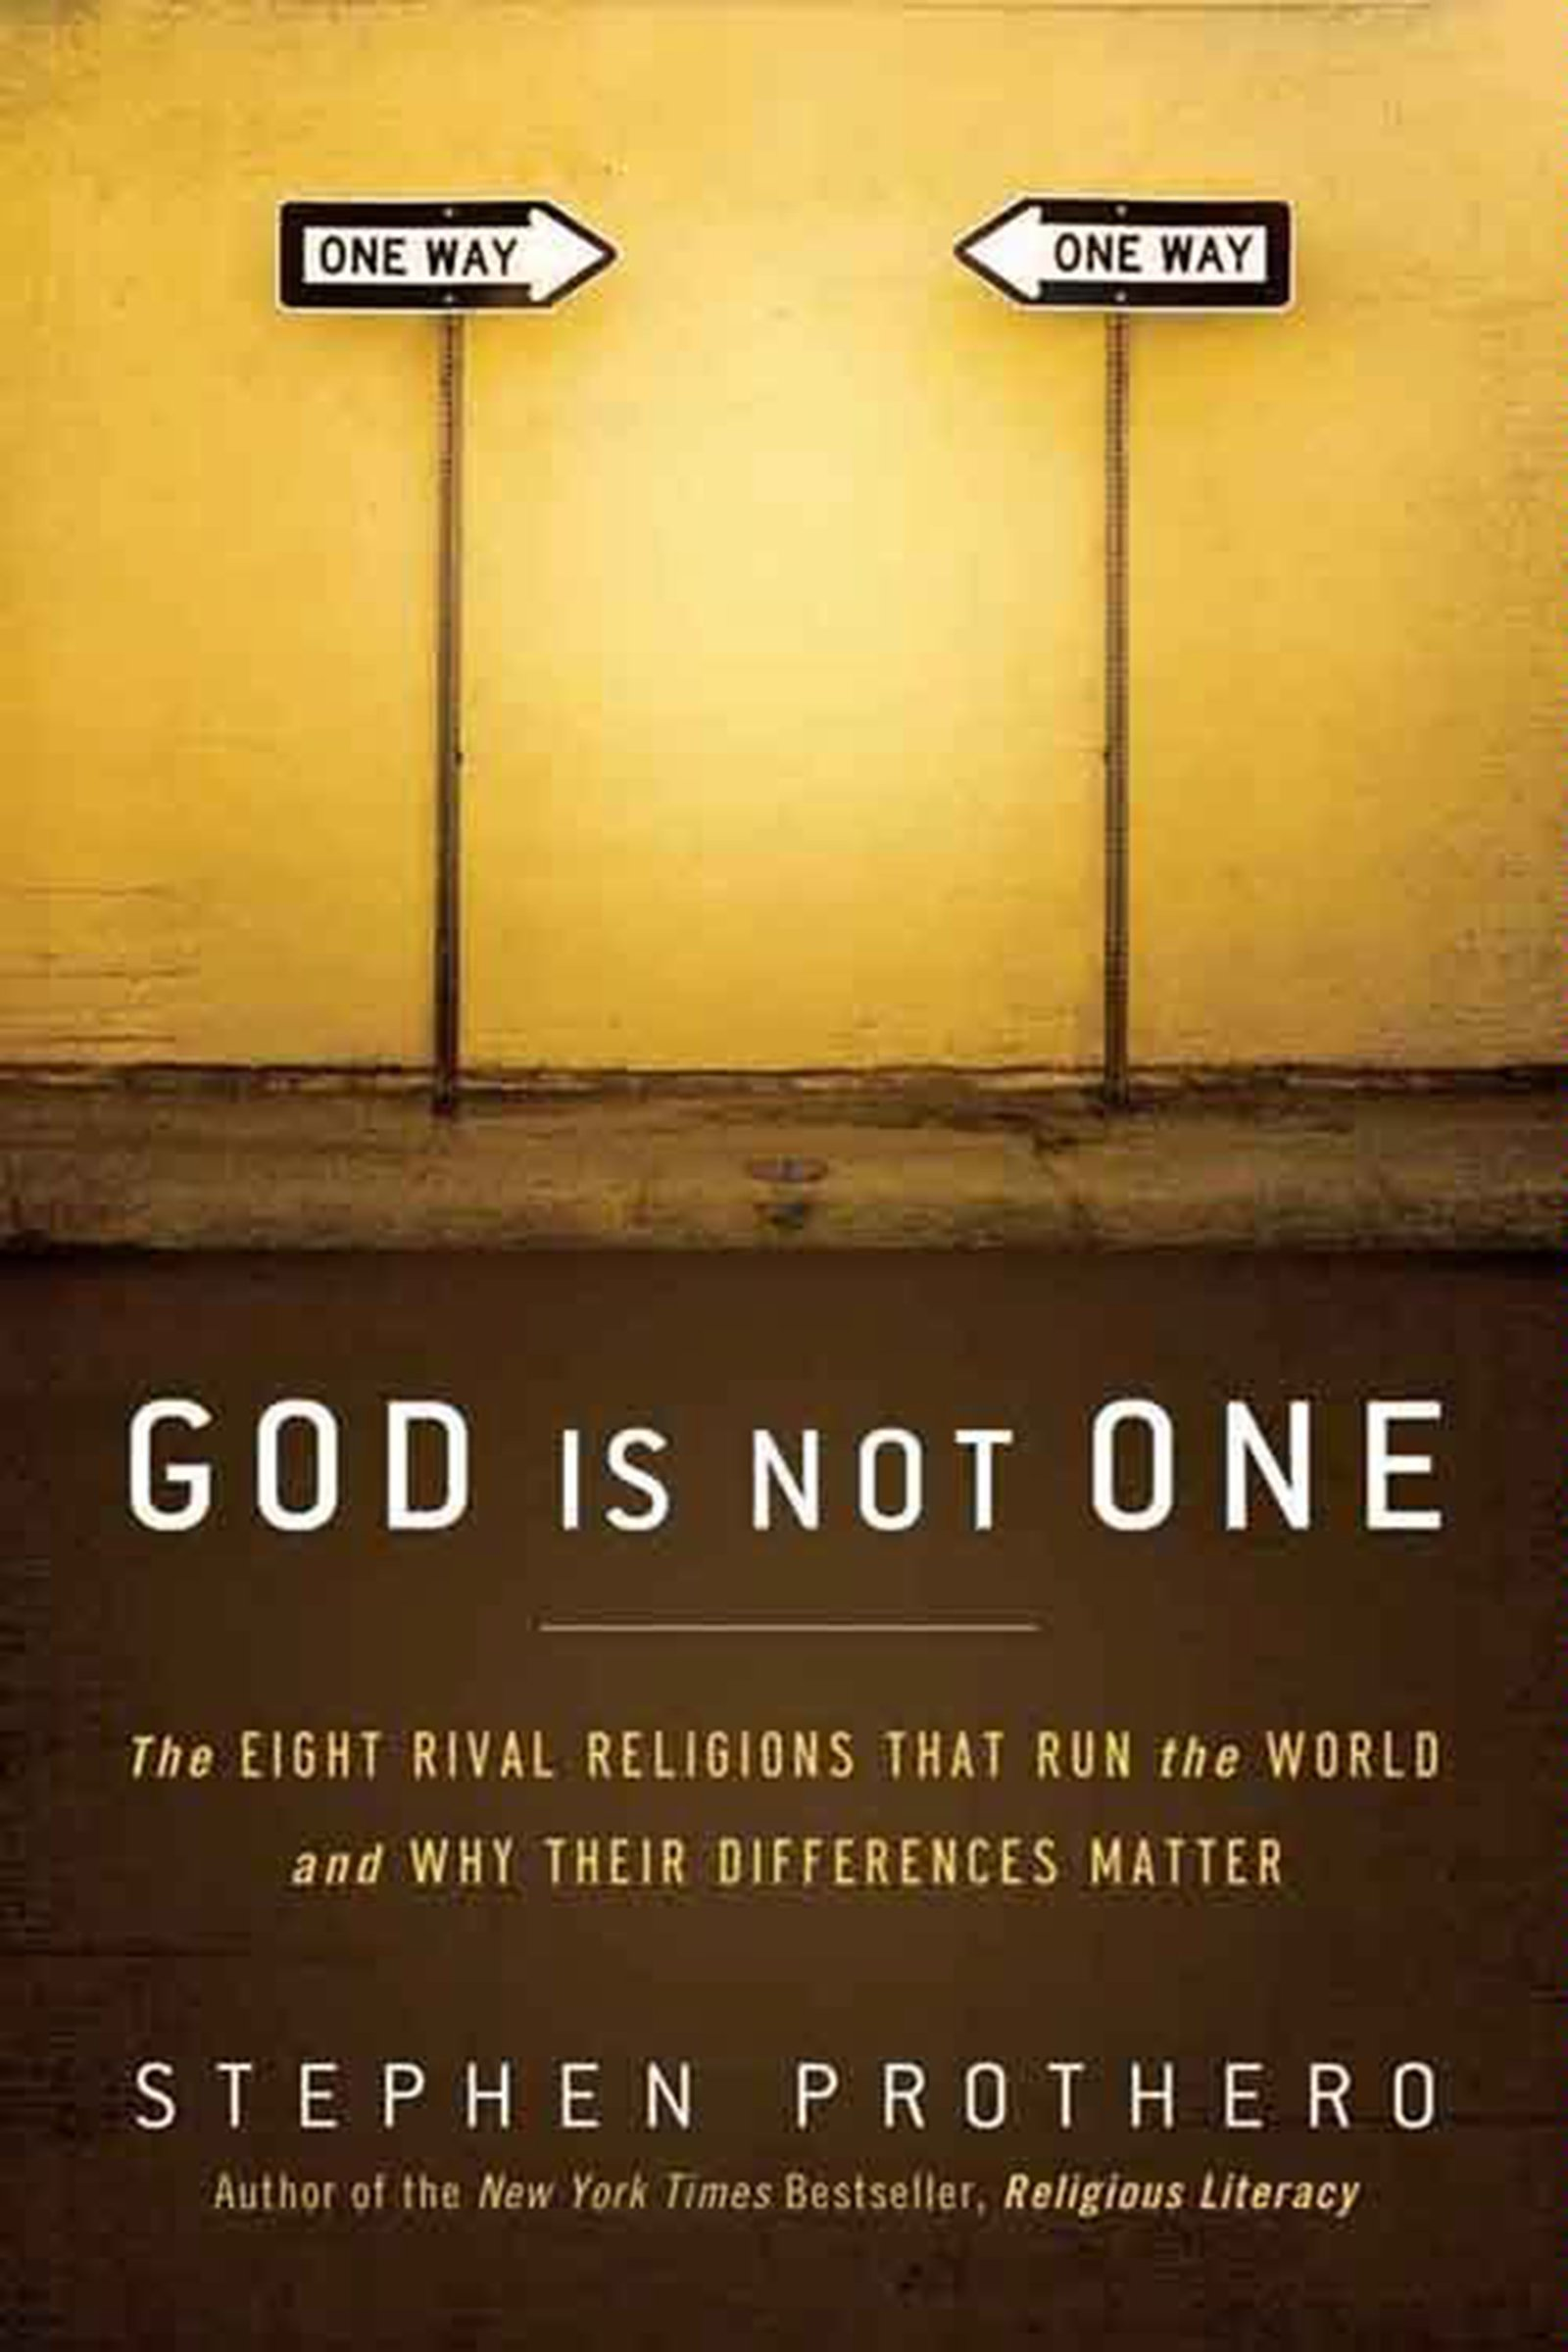 God is not One by Stephen Prothero